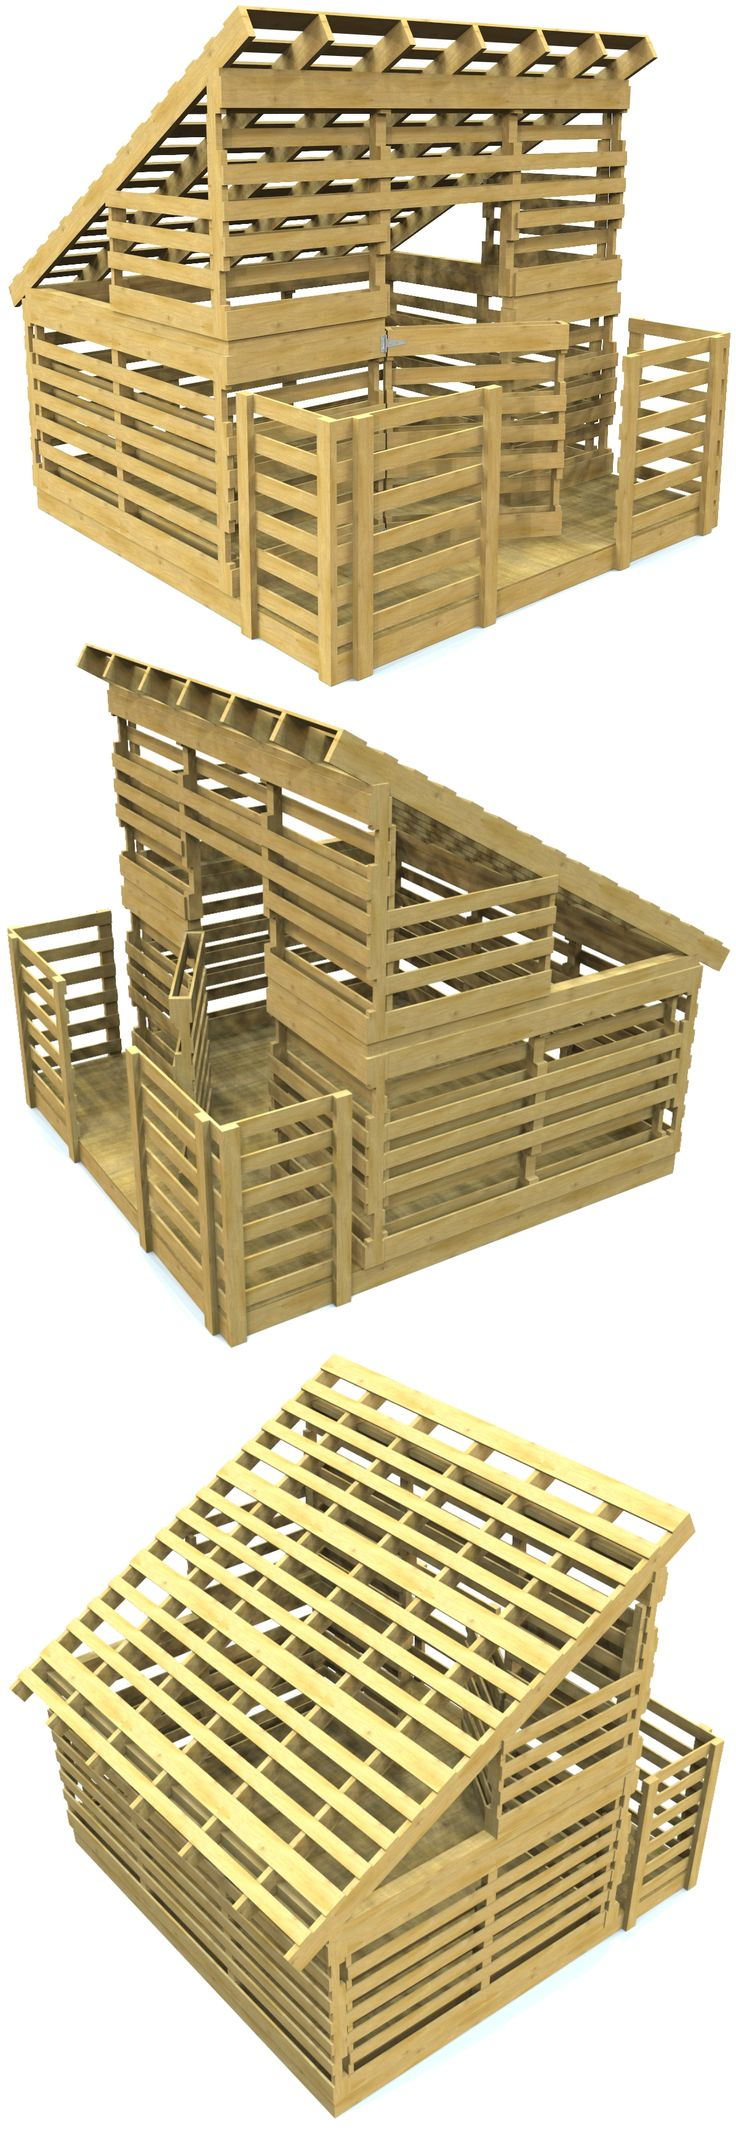 A free pallet based clubhouse design for kids.  If you have 25 or so pallets and some tools, you can download these plans for free and get started today!